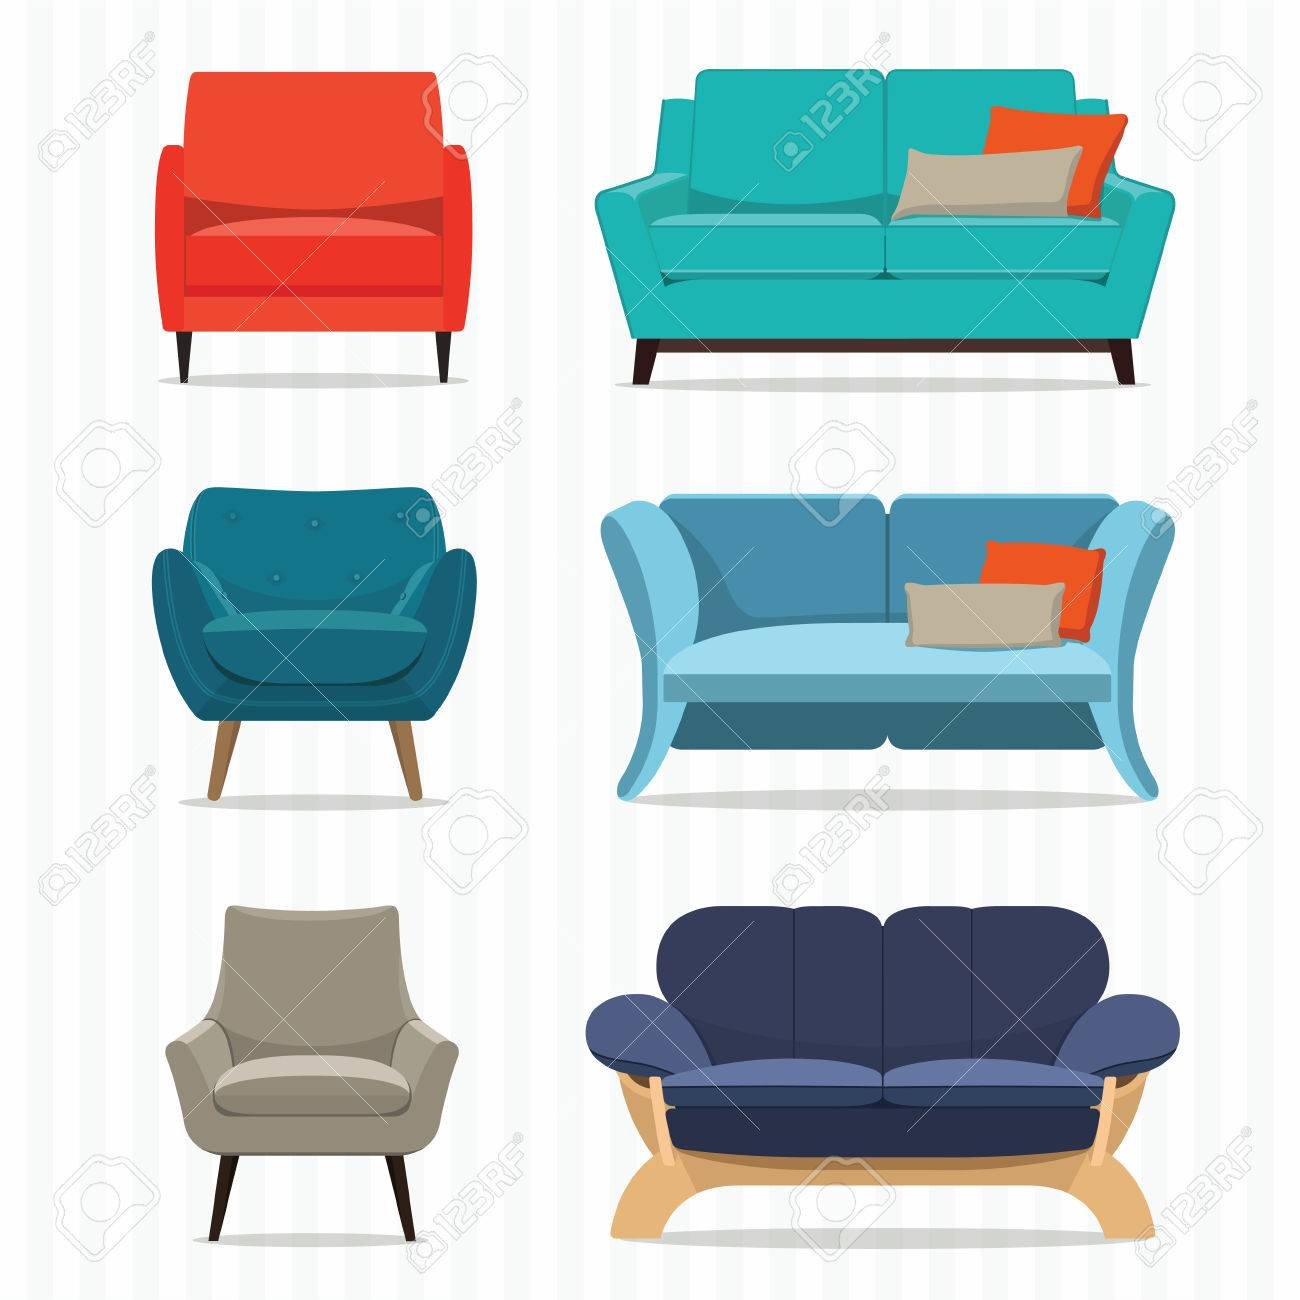 Living Room Furniture Design Concept Set With Modern Home Interior Elements  Isolated Vector Illustration Stock Vector